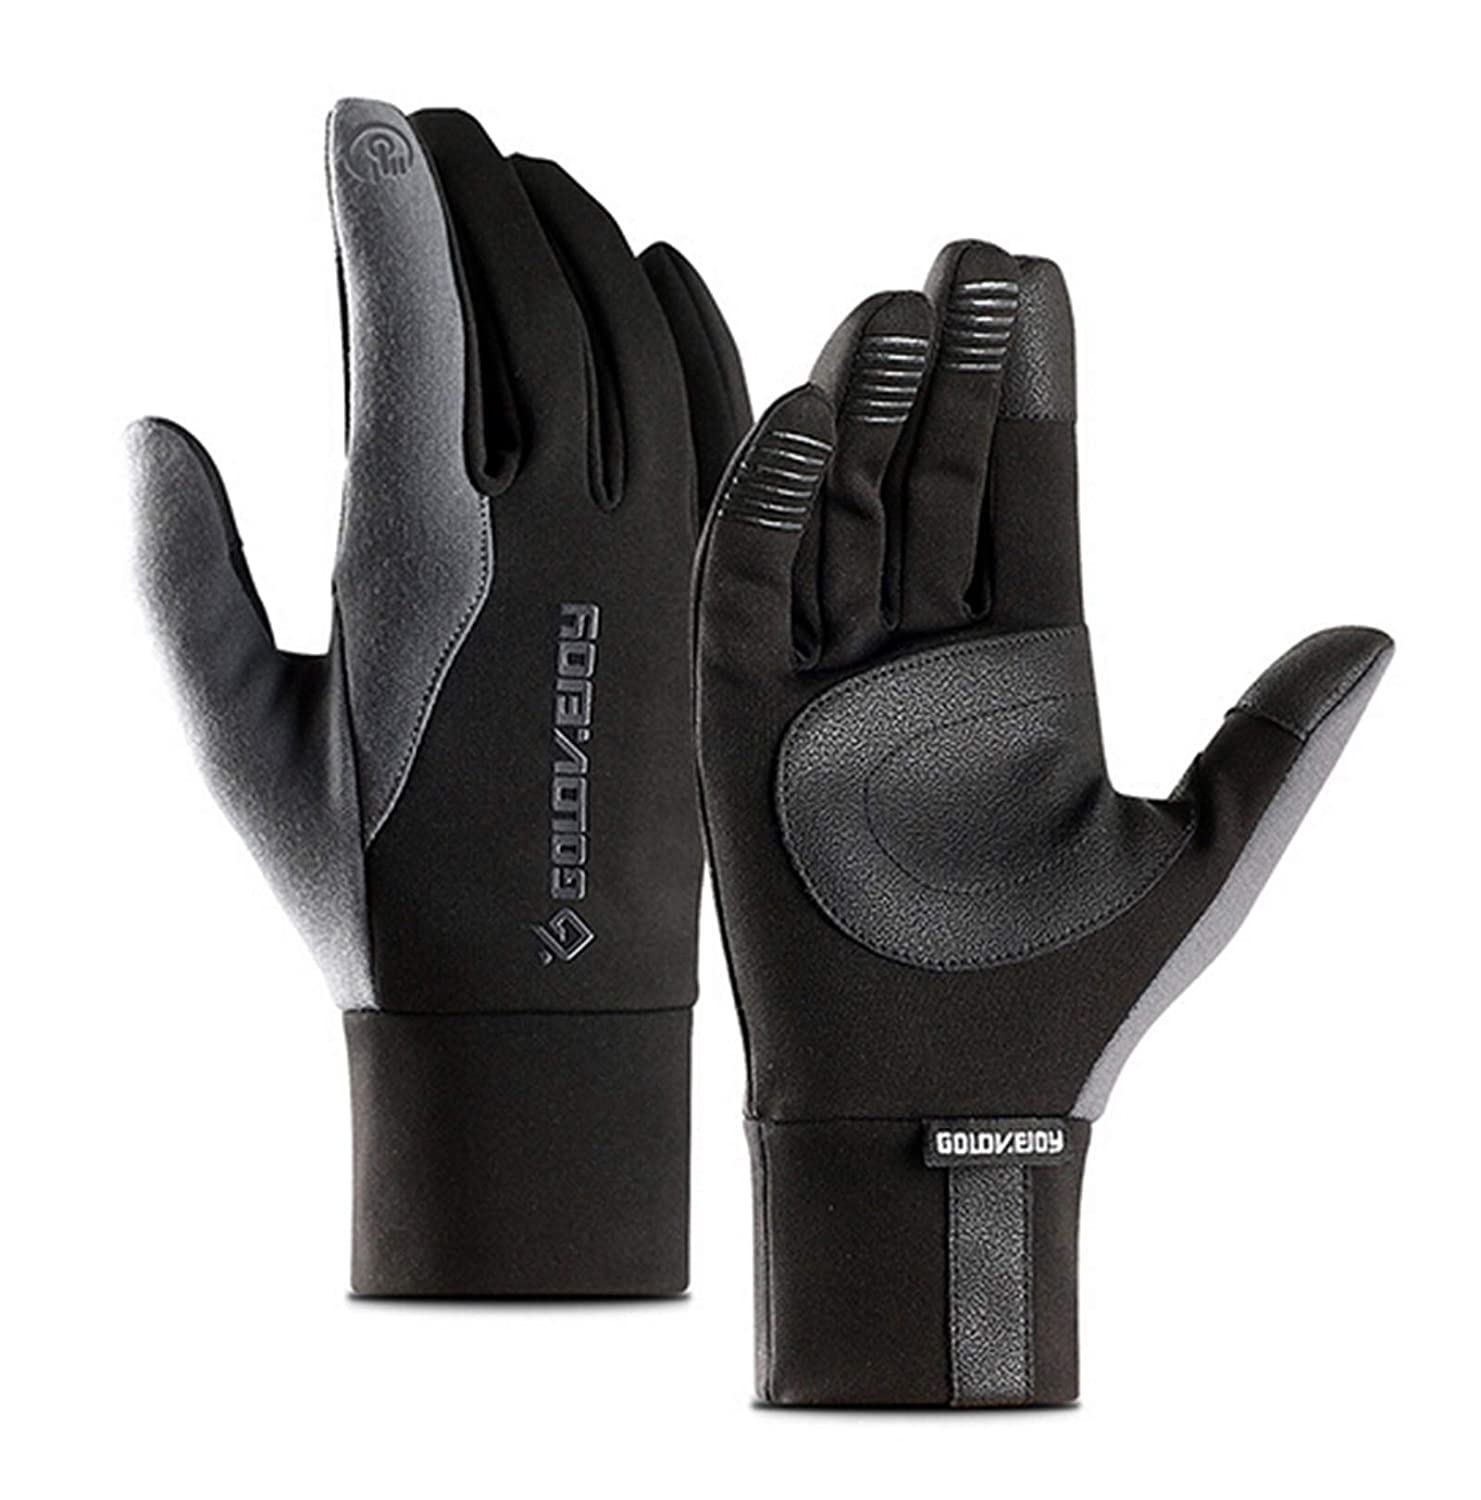 KnSam Outdoor Gloves Heated Gloves for Women Men KnSam14GV277